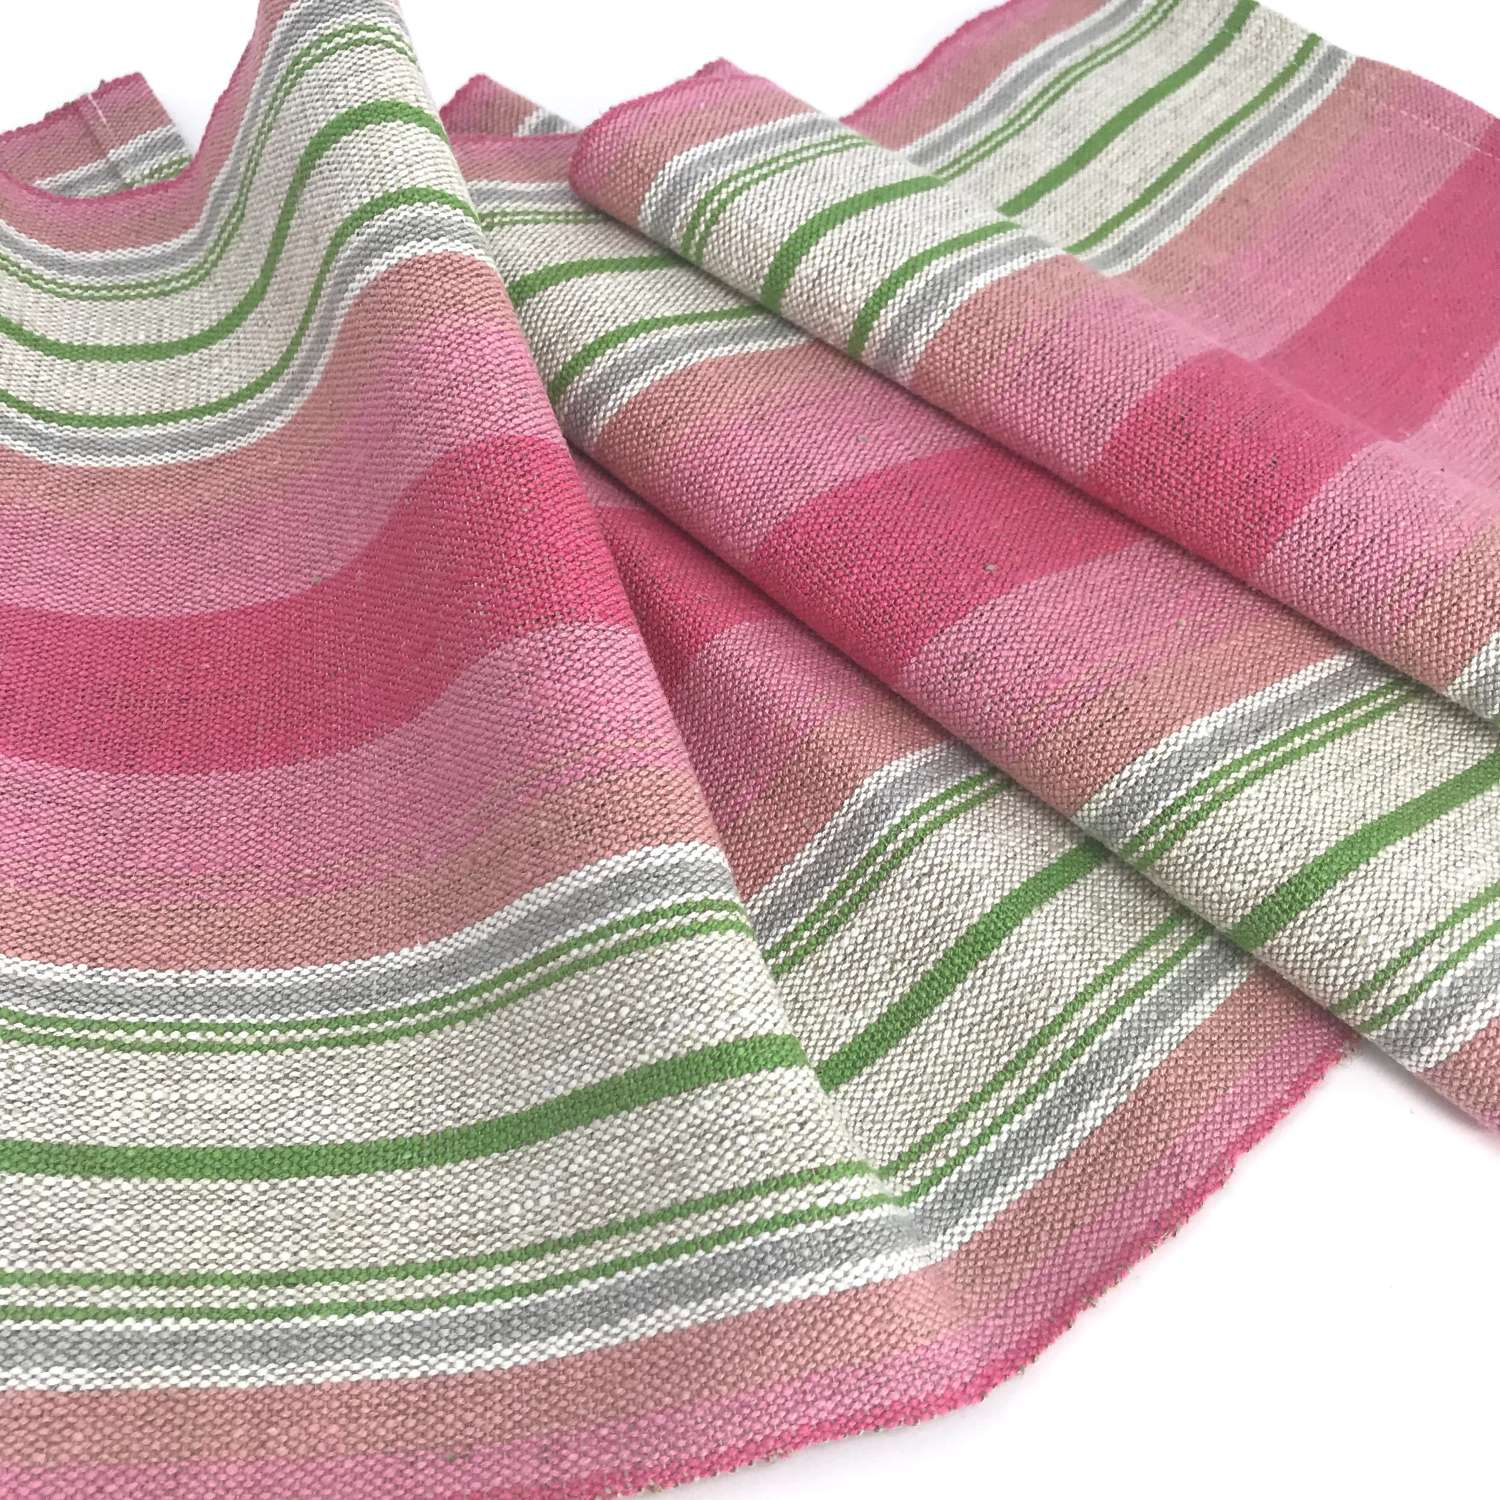 Swedish handwoven linen table runner, pink and green, c1970s unused